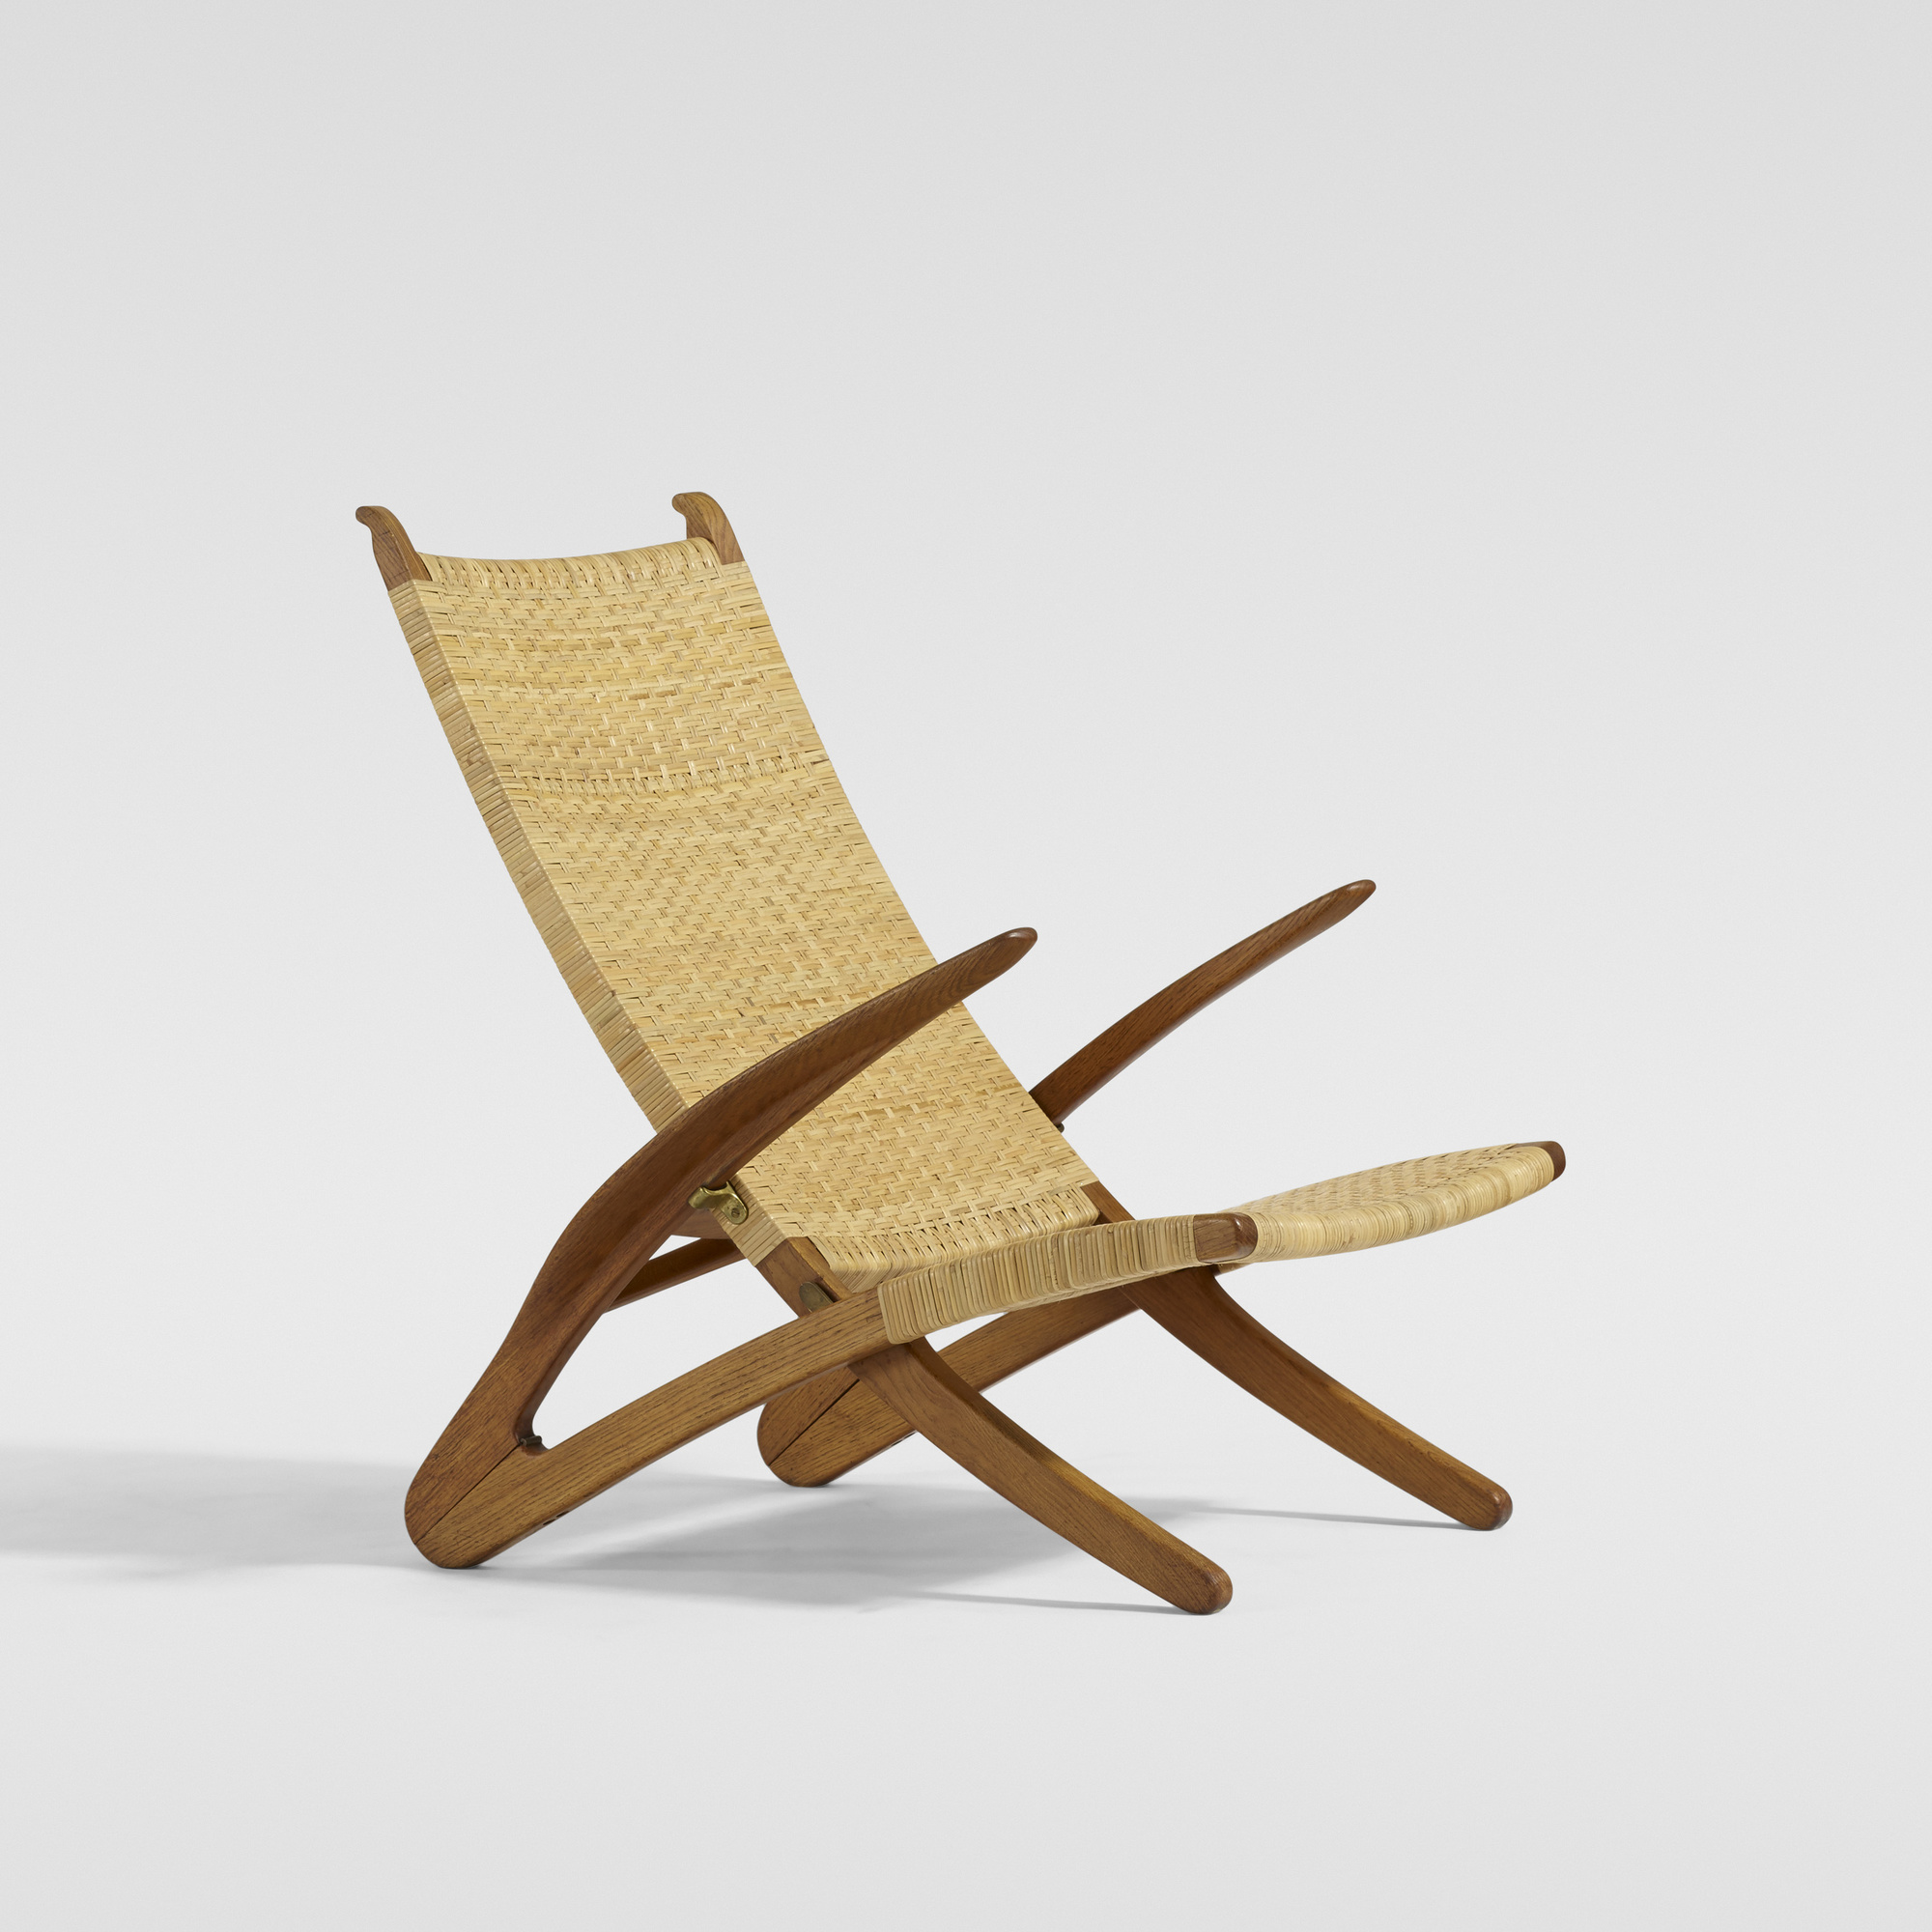 23: Hans J. Wegner / Rare Dolphin lounge chair (2 of 5)